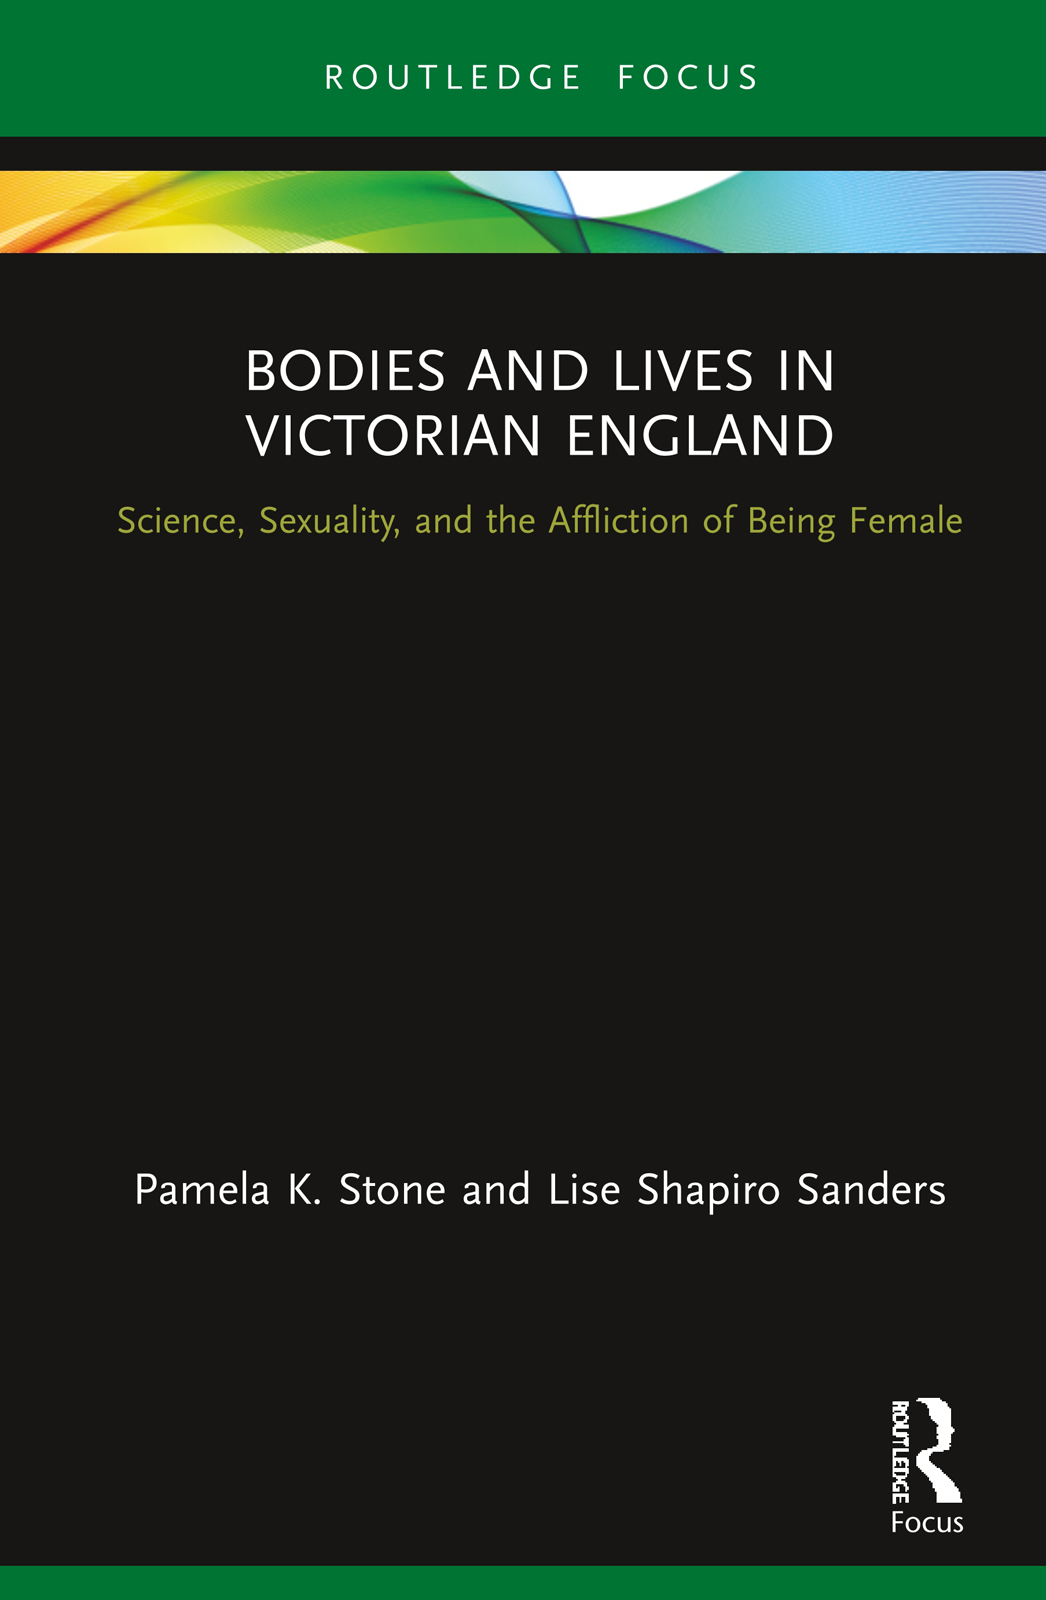 Bodies and Lives in Victorian England